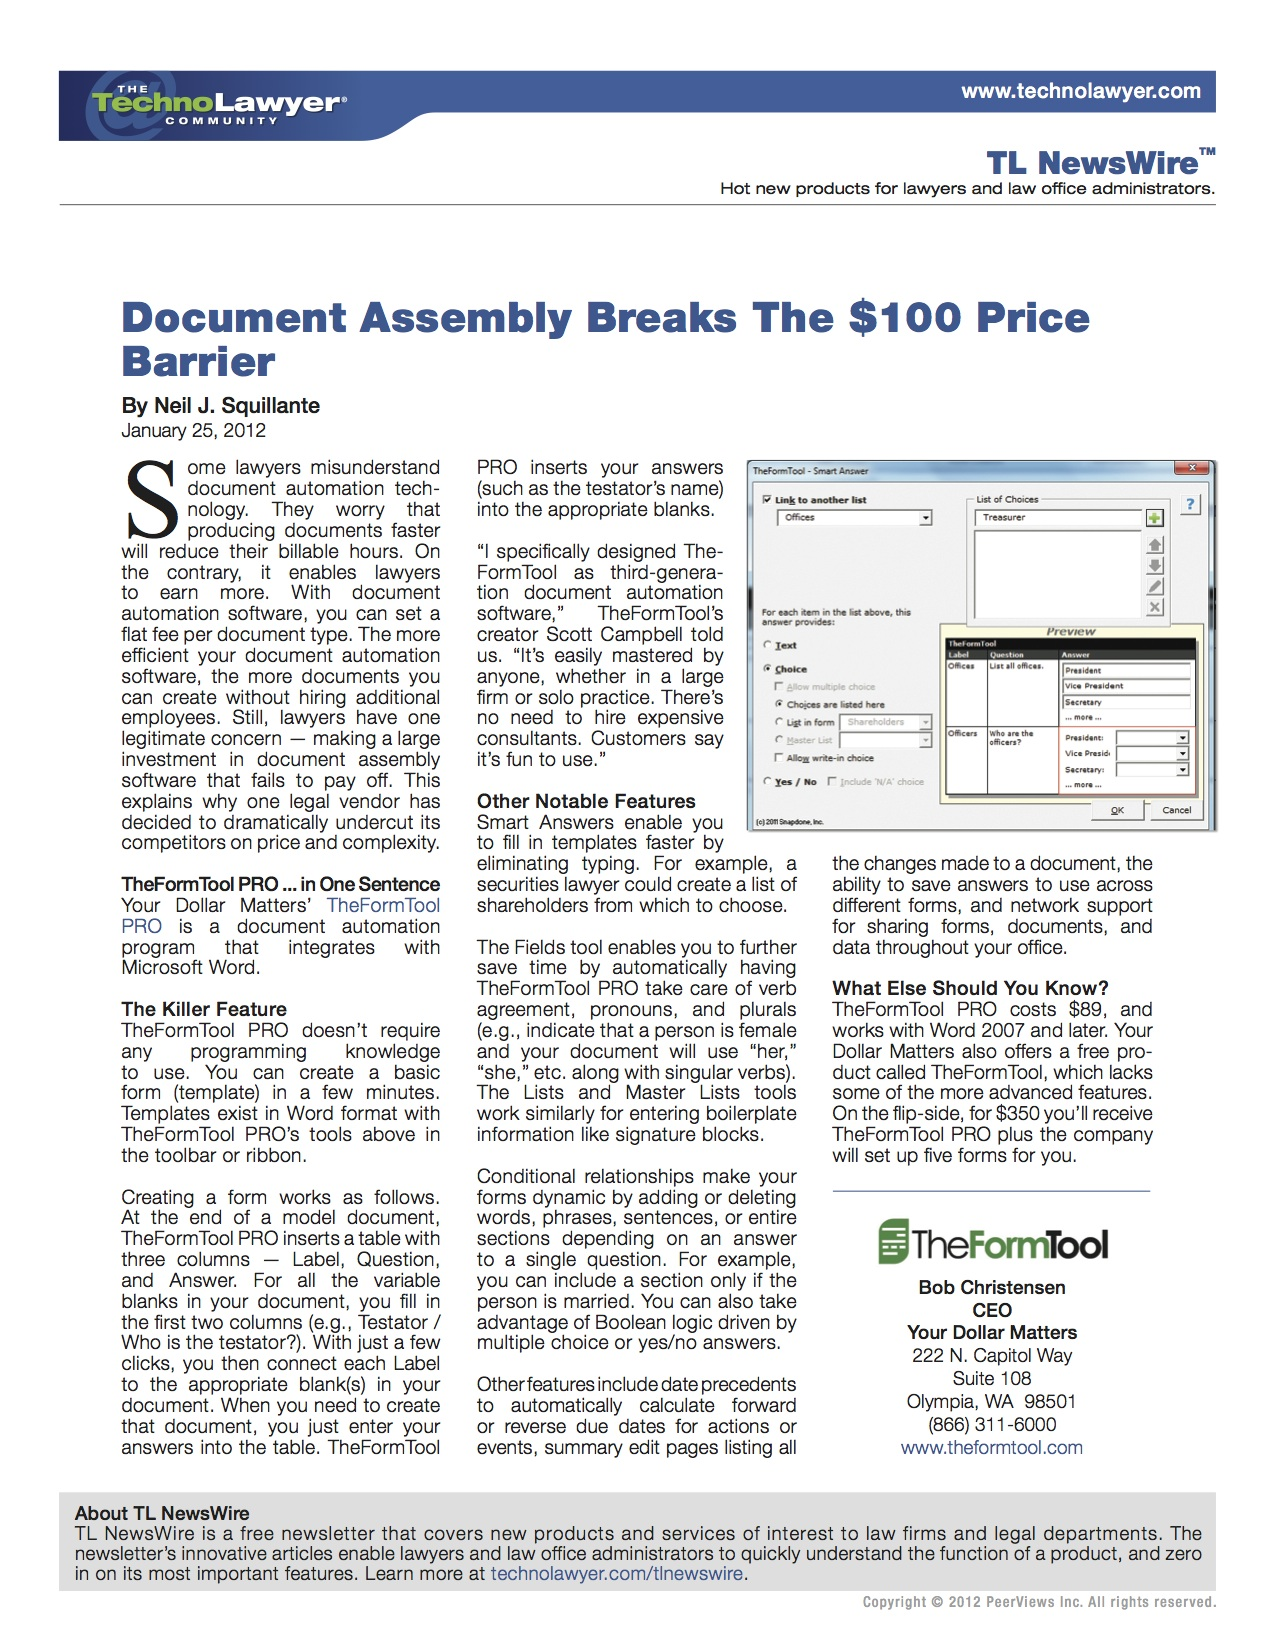 TheFormTool TechnoLawyer Document Assembly Breaks The Price - Legal document assembly